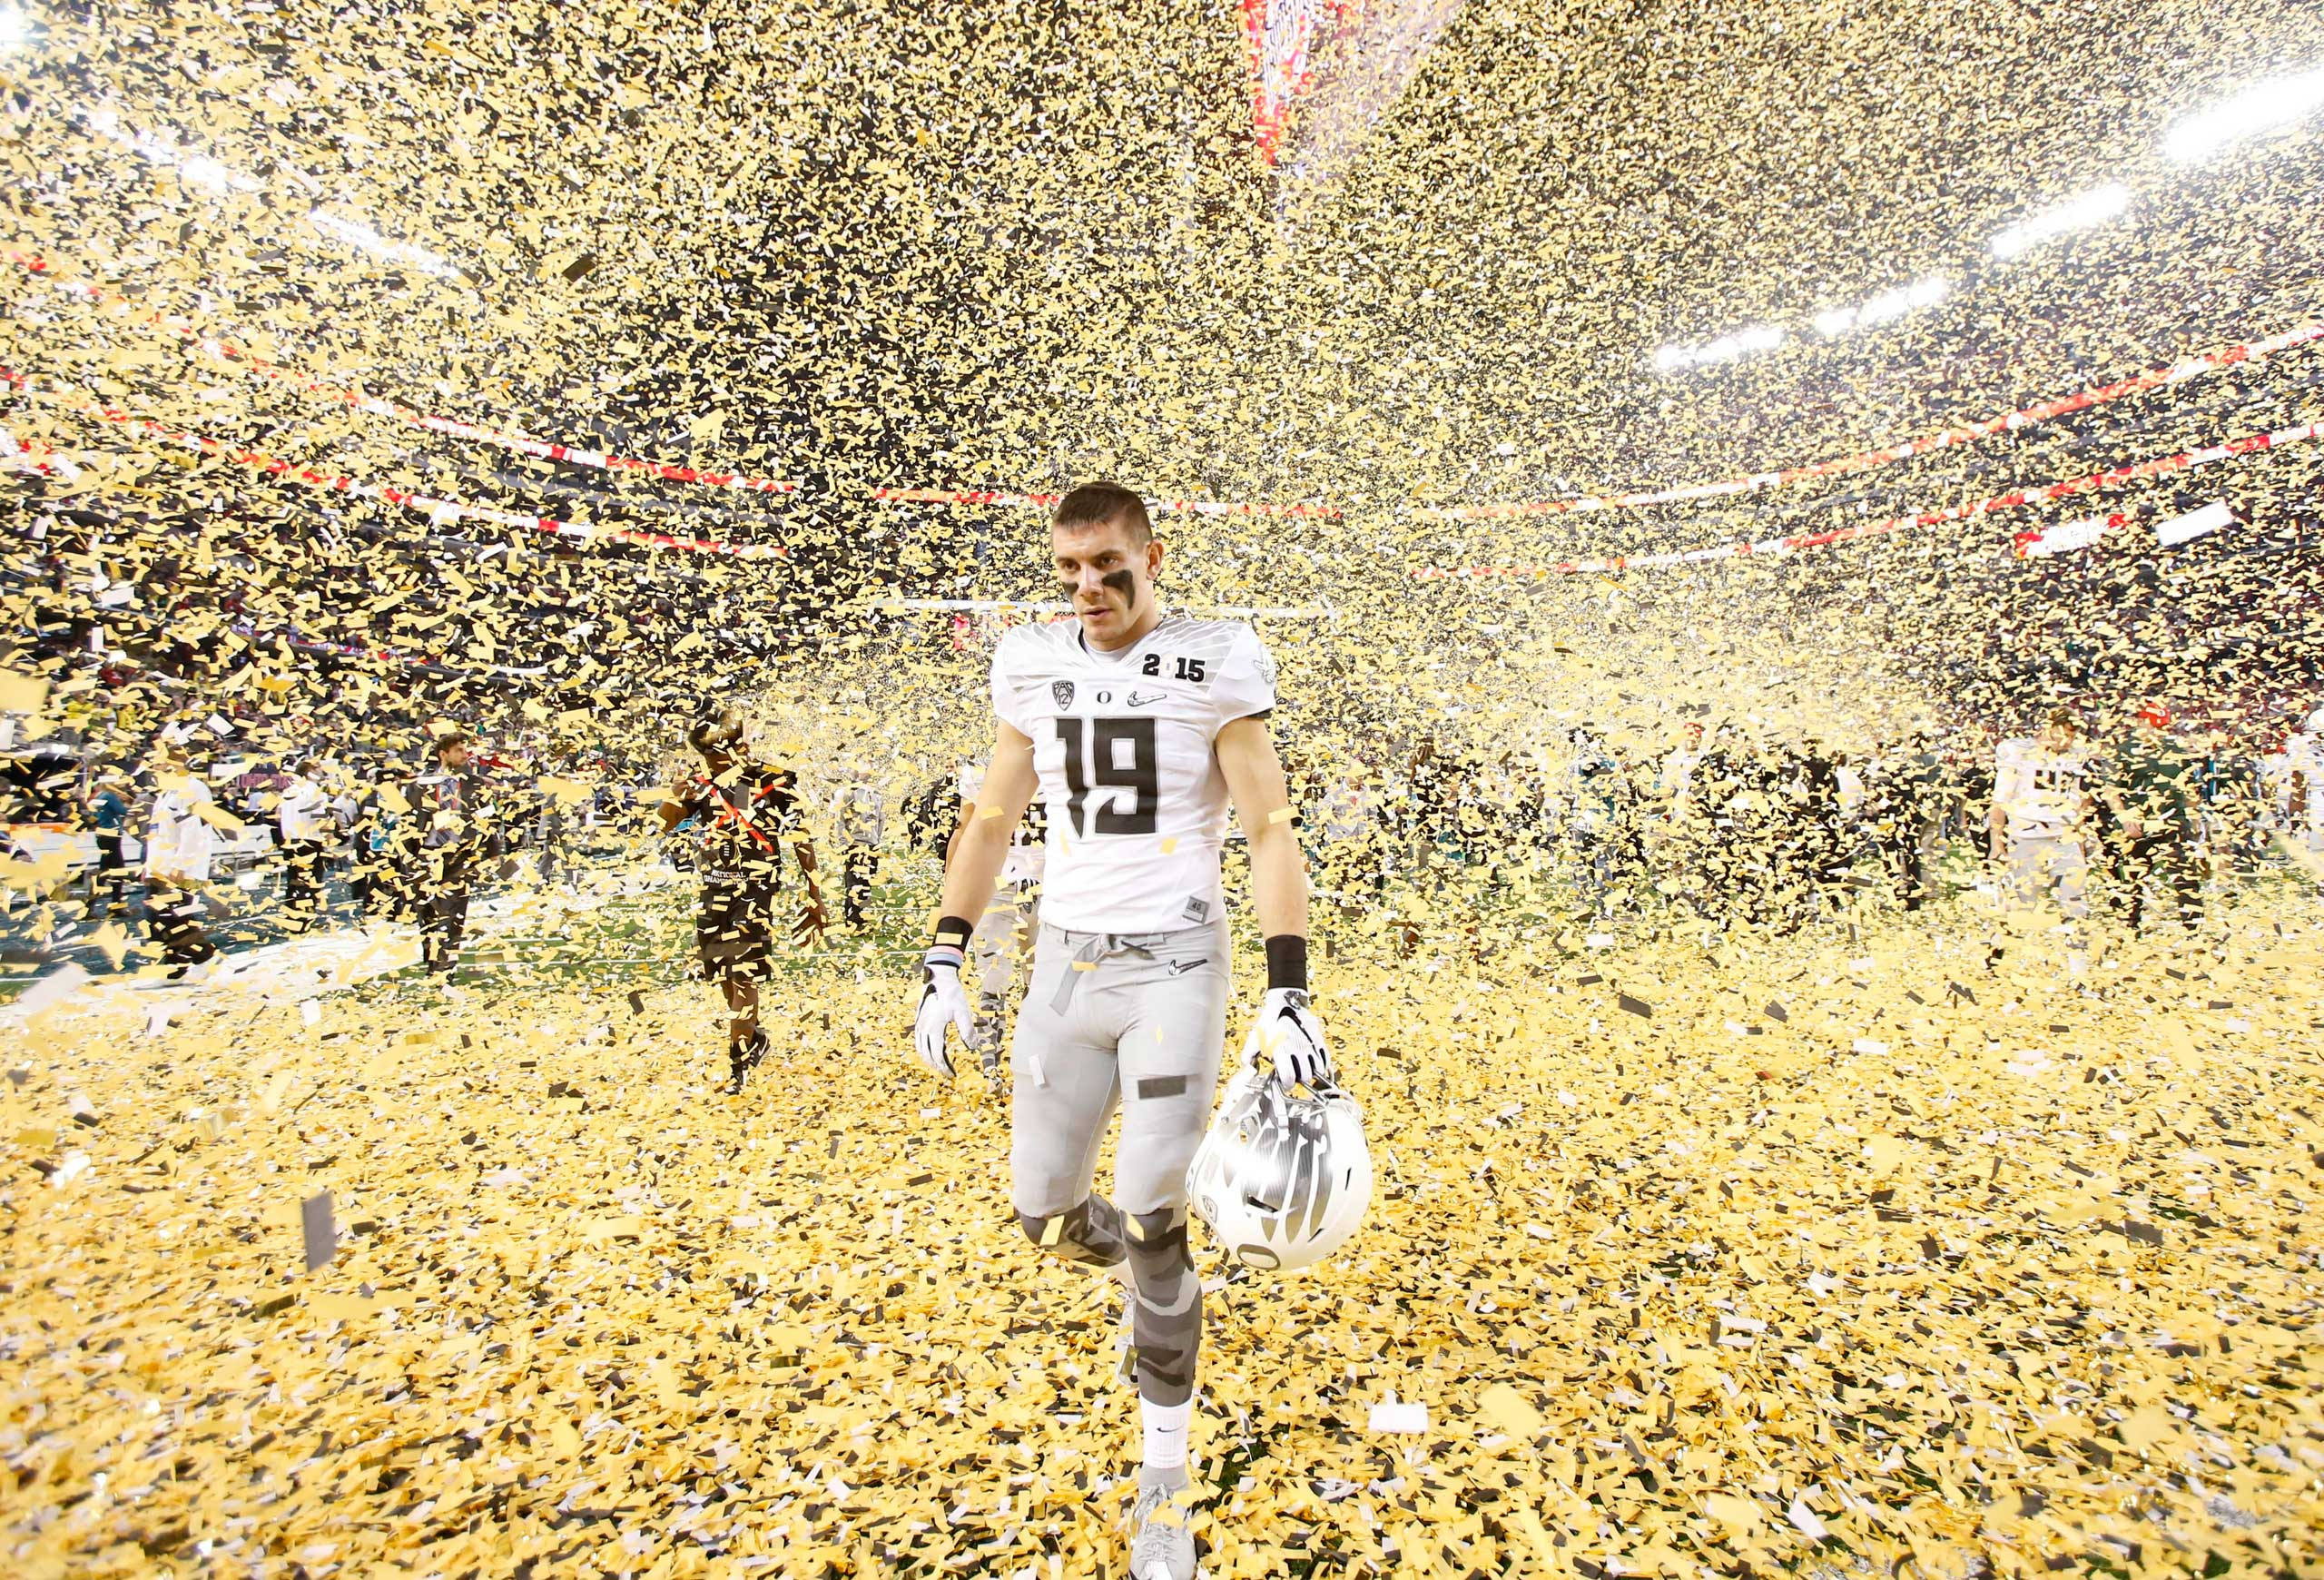 Oregon Ducks wide receiver Austin Daich (19) walks off the field after losing to the Ohio State Buckeyes in the 2015 College Football Playoff National Championship Game on Jan. 12, 2015 in Arlington, Texas.